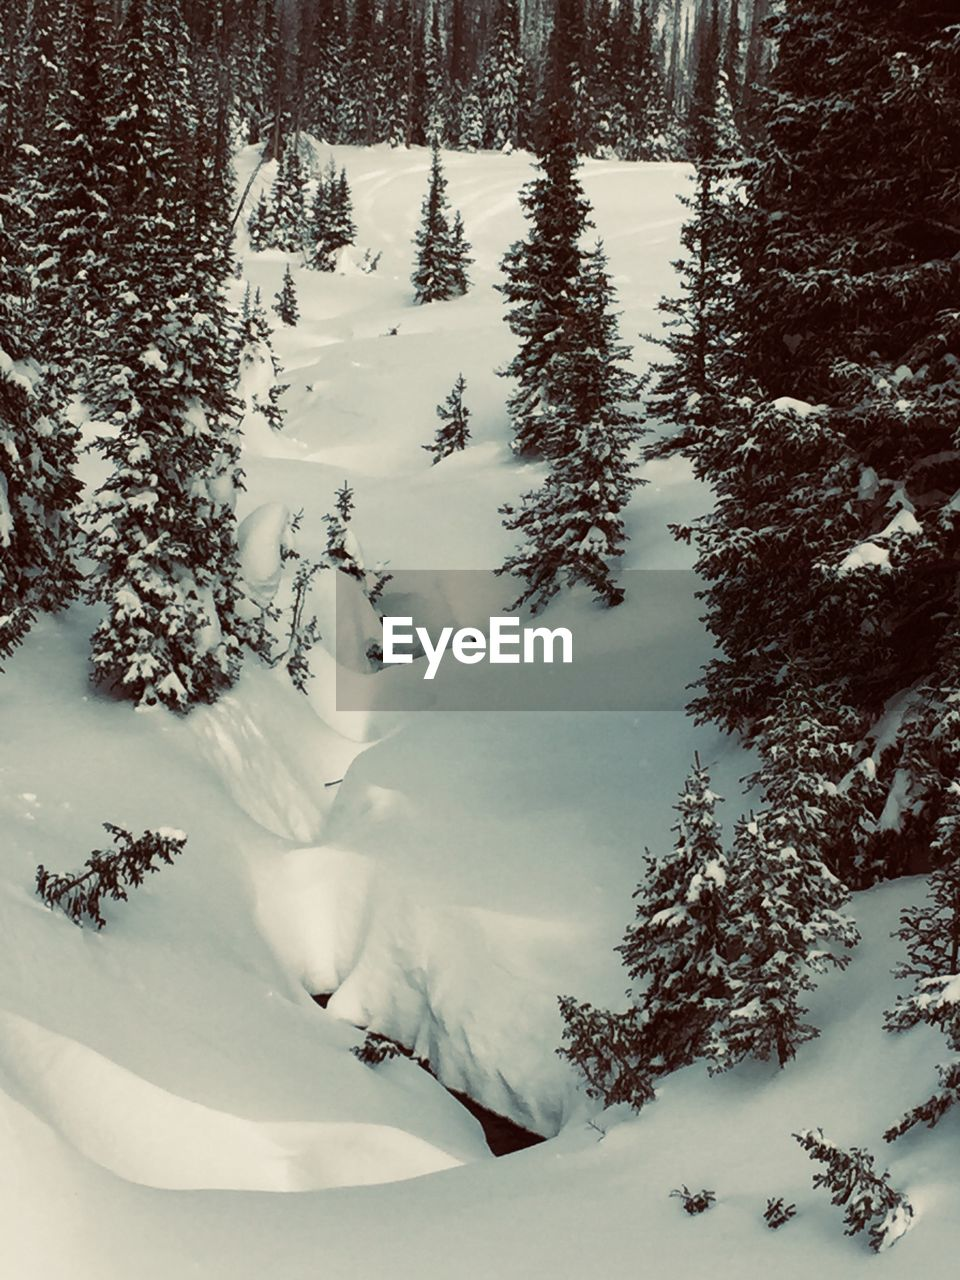 winter, snow, cold temperature, tree, beauty in nature, scenics - nature, tranquility, tranquil scene, plant, land, covering, nature, no people, white color, landscape, mountain, forest, day, non-urban scene, outdoors, pine tree, coniferous tree, woodland, snowcapped mountain, powder snow